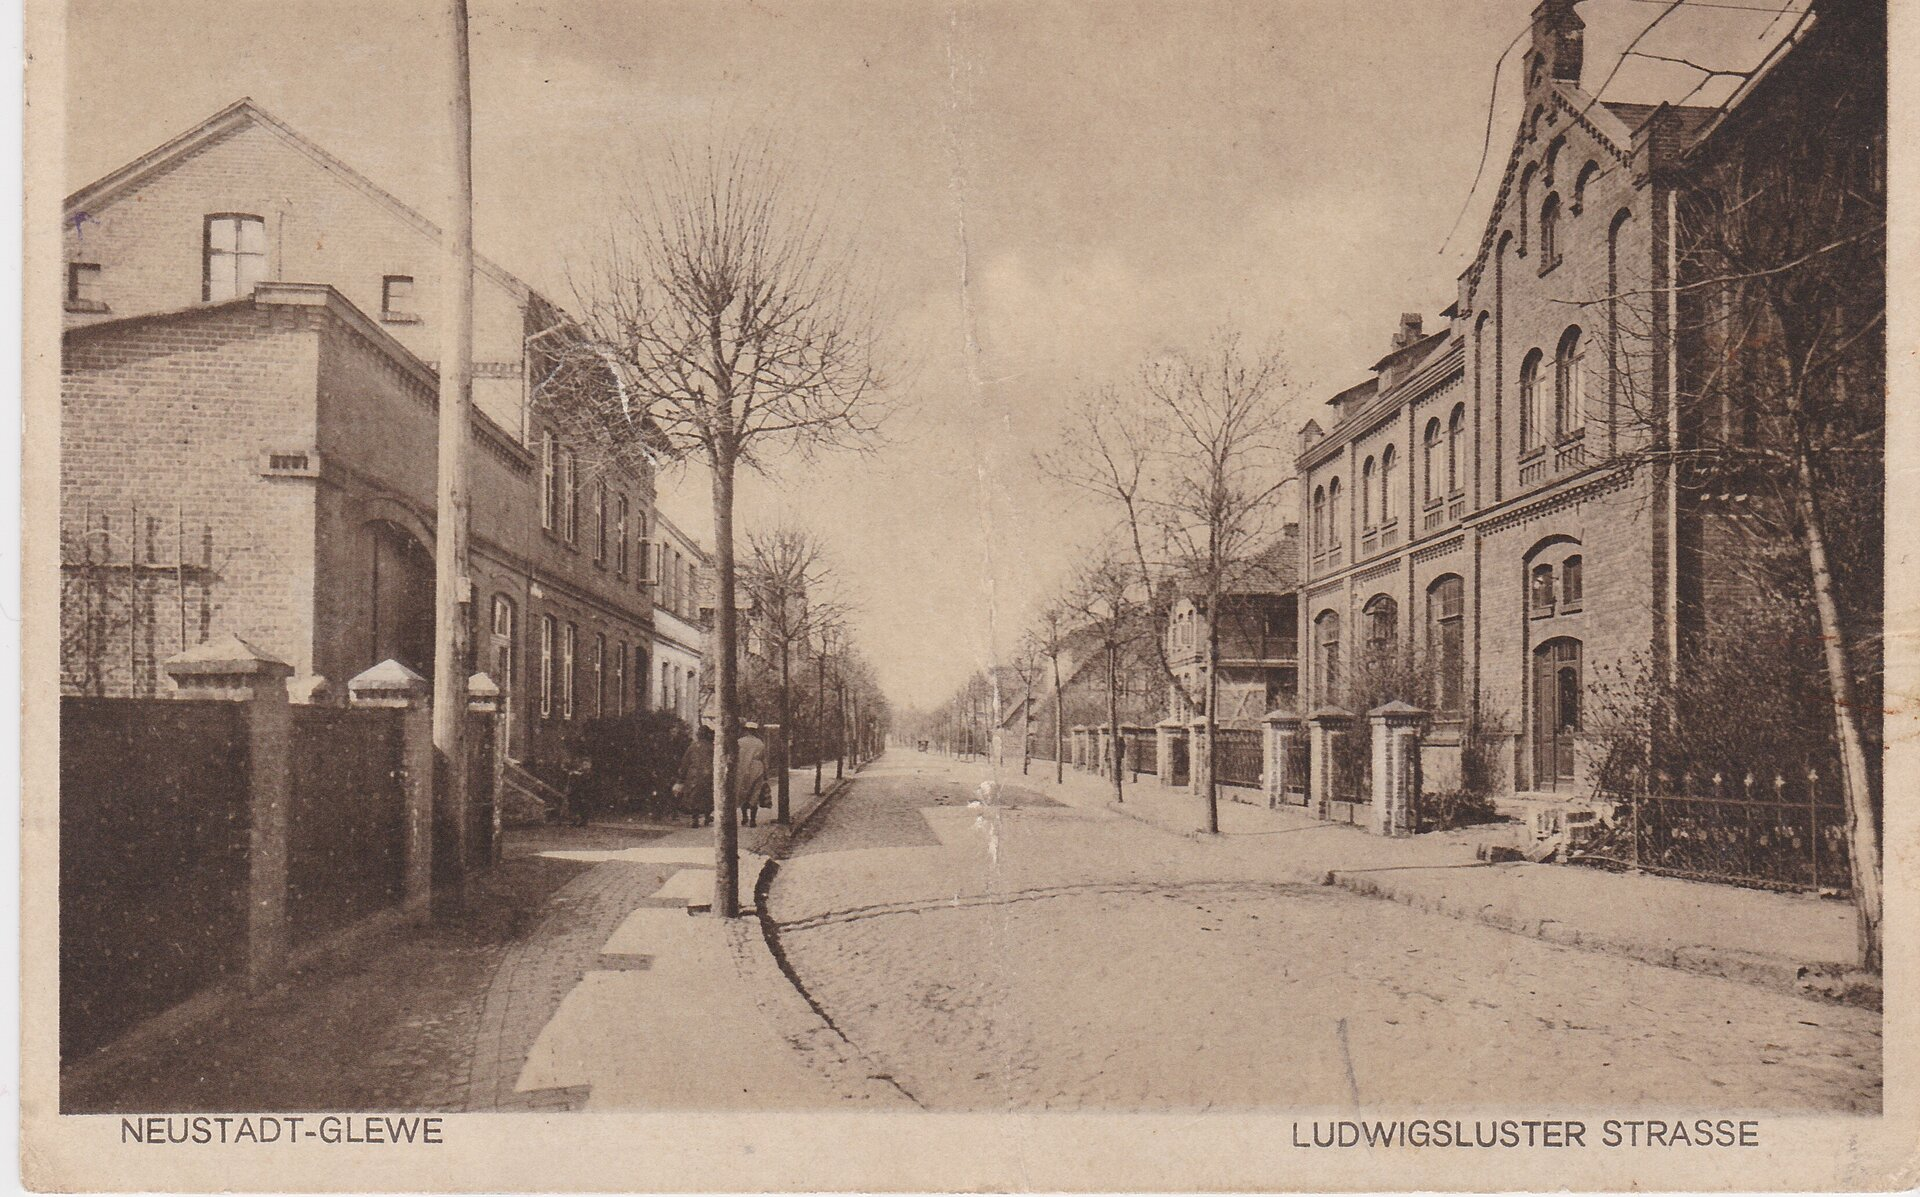 Ludwigsluster Strasse, Anfang 1930er Jahre, Blick in Richtung Stadtausgang nach Ludwigslust